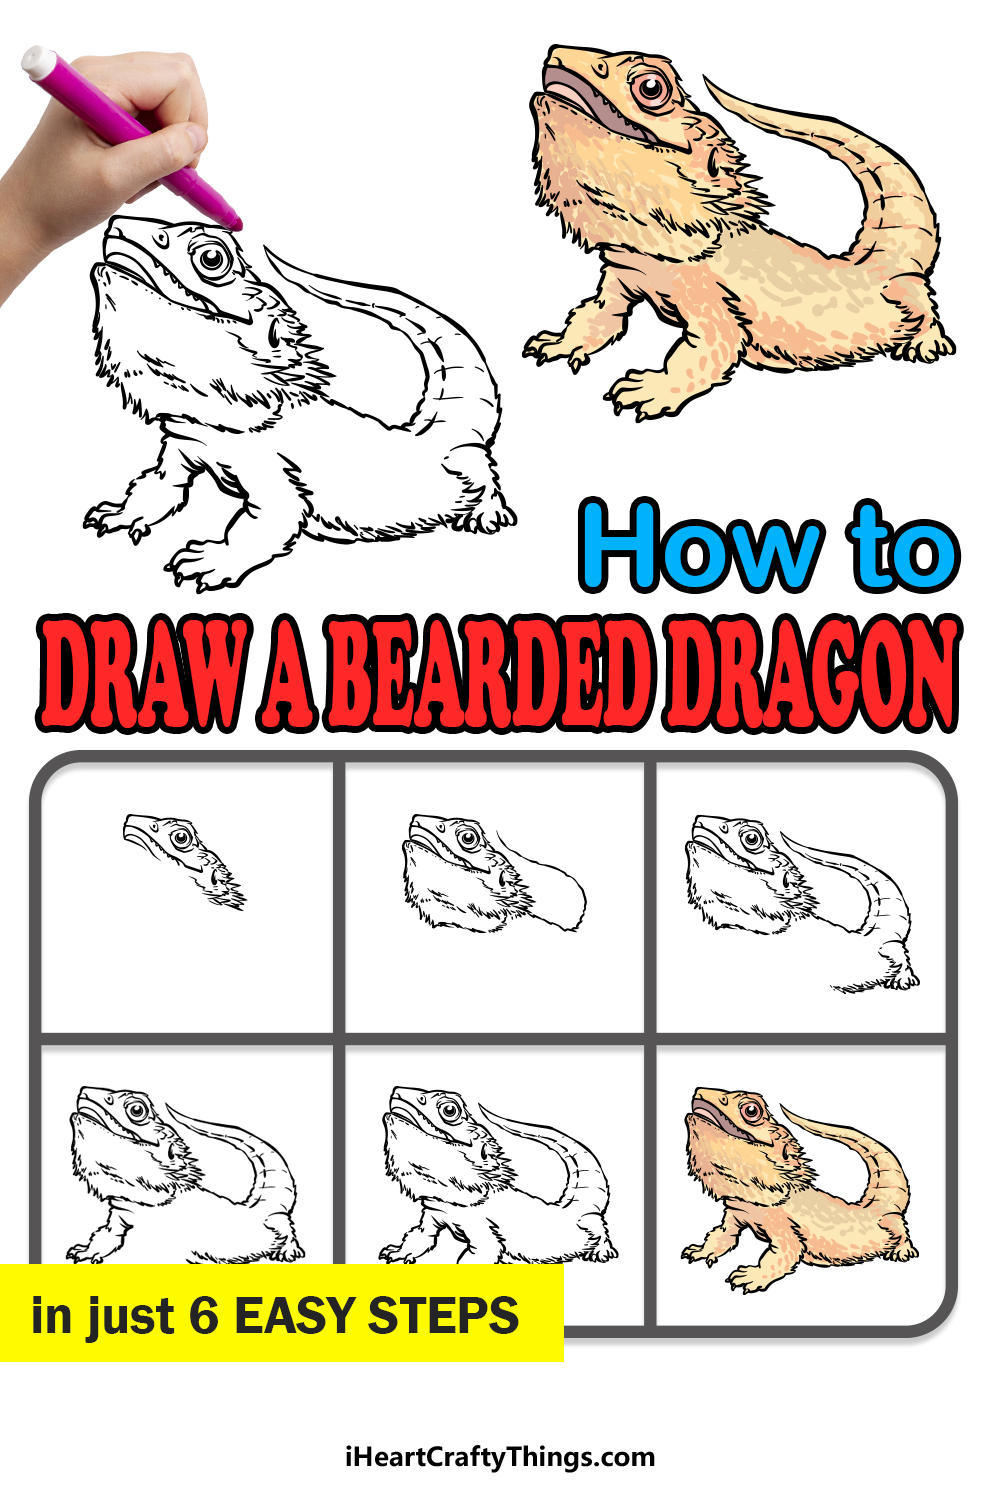 how to draw a bearded dragon in 6 easy steps